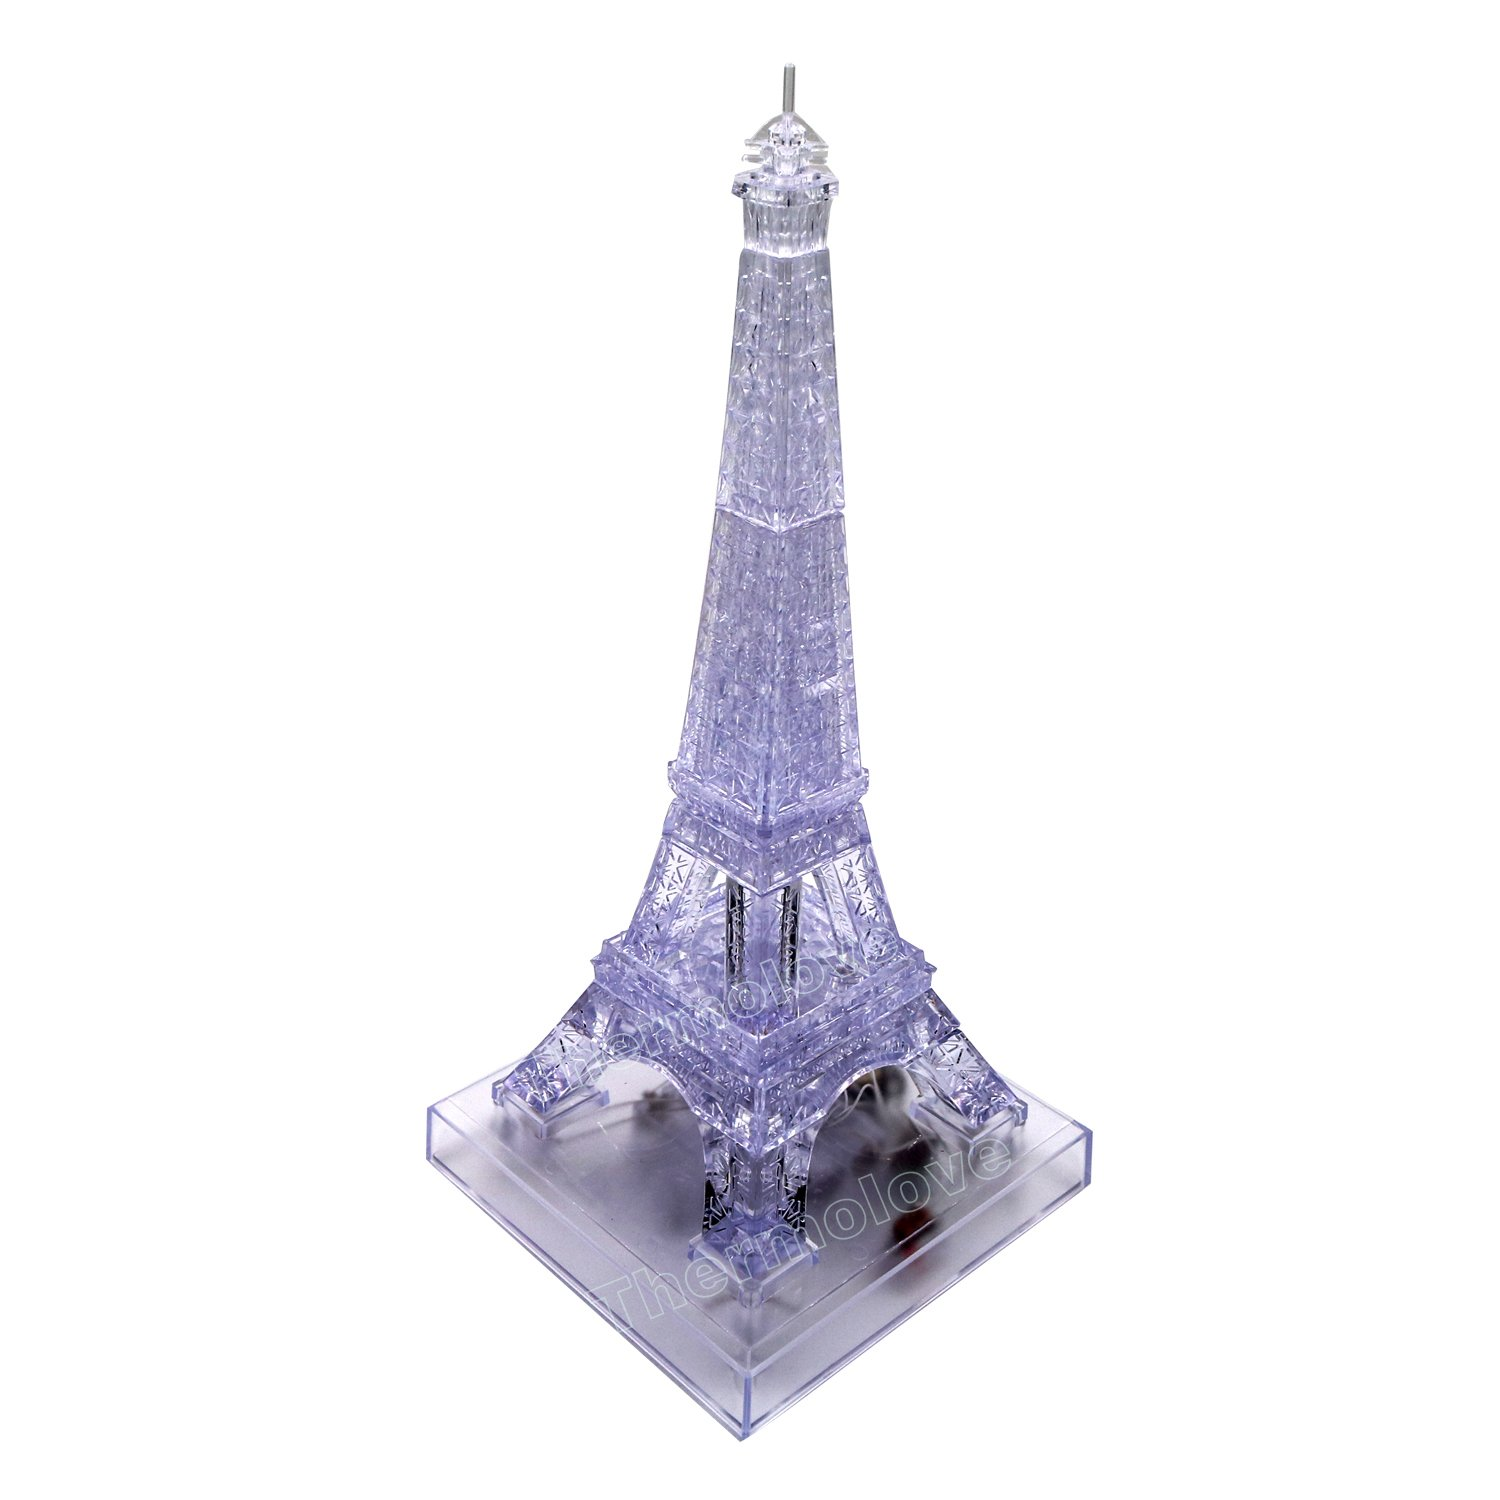 43 Thermolove 3D Decoration Model Toy Crystal Puzzle Game Toy Big Eiffel Tower with Music and Colorful Lights-Transparent